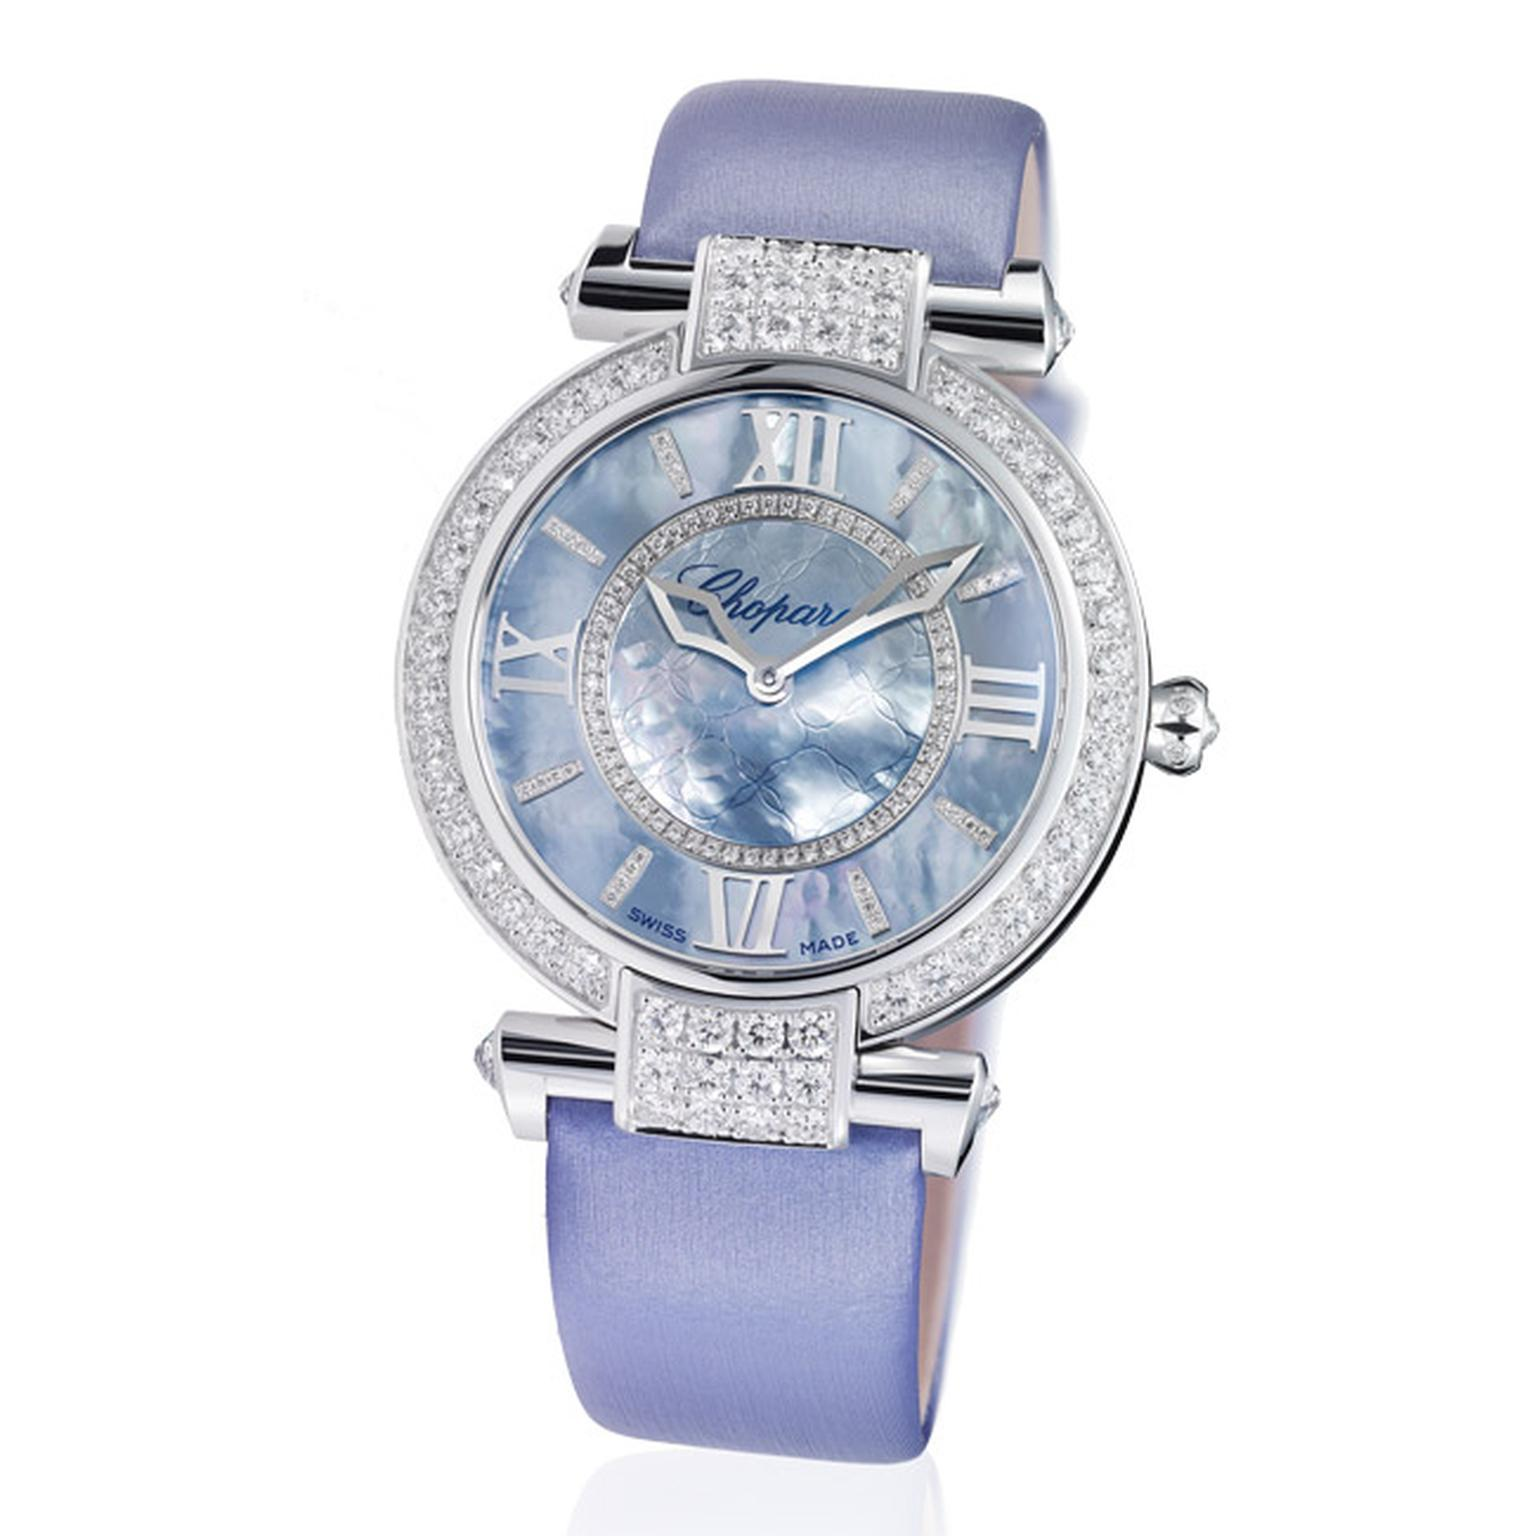 Chopard-Imperiale-Blue-Watch-Main